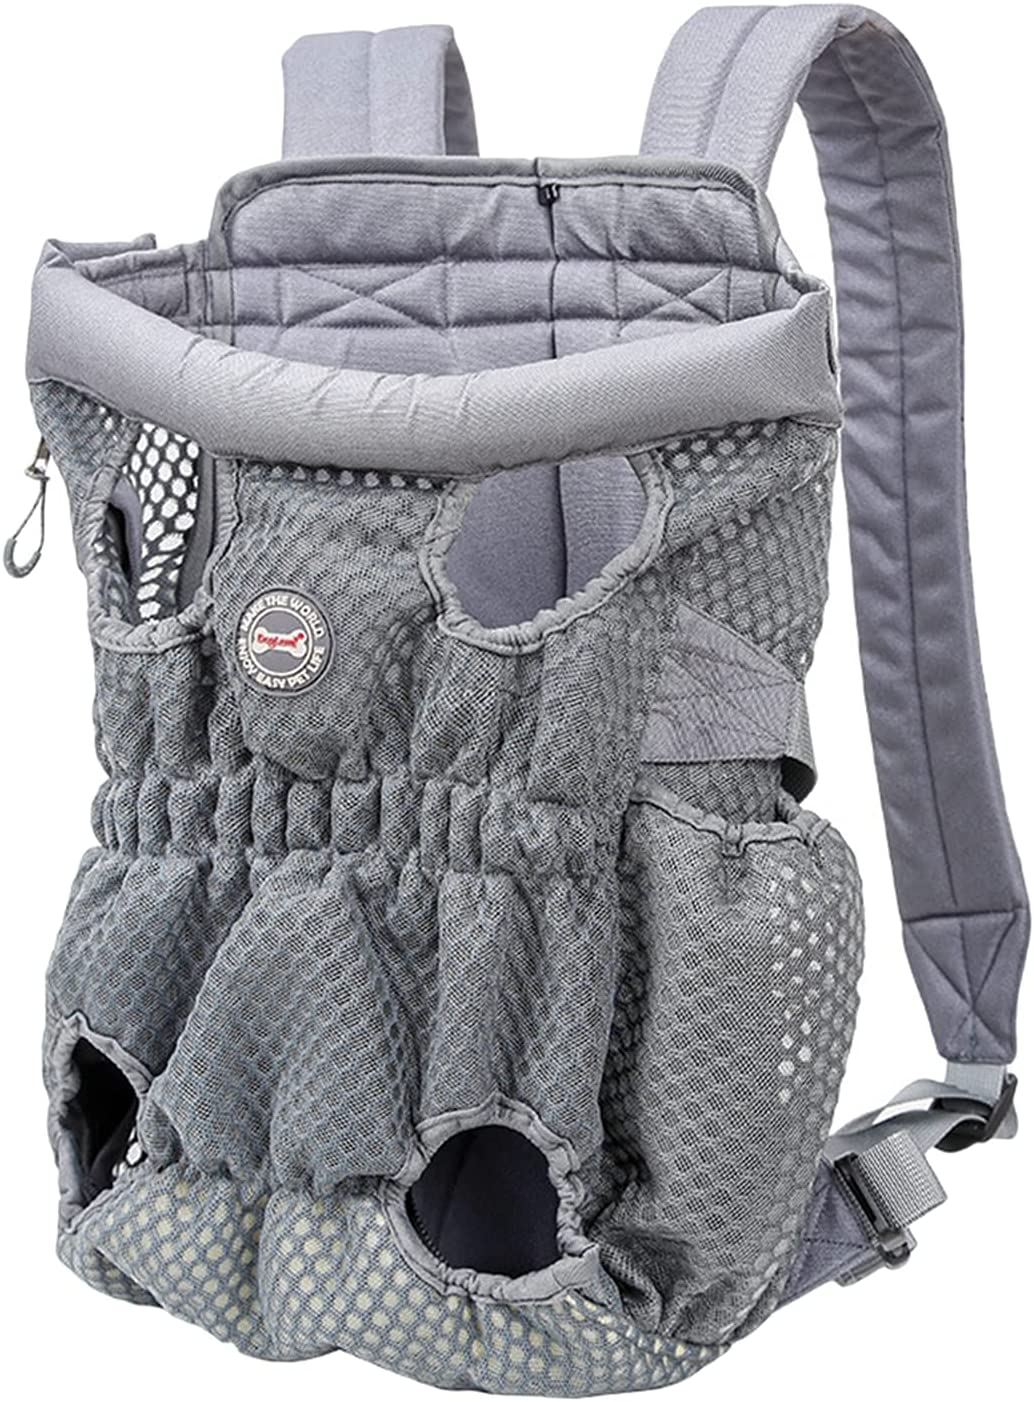 Dolity Portable Outlet SALE Dog Front Carrier Breathable Backpack Legs Out Classic